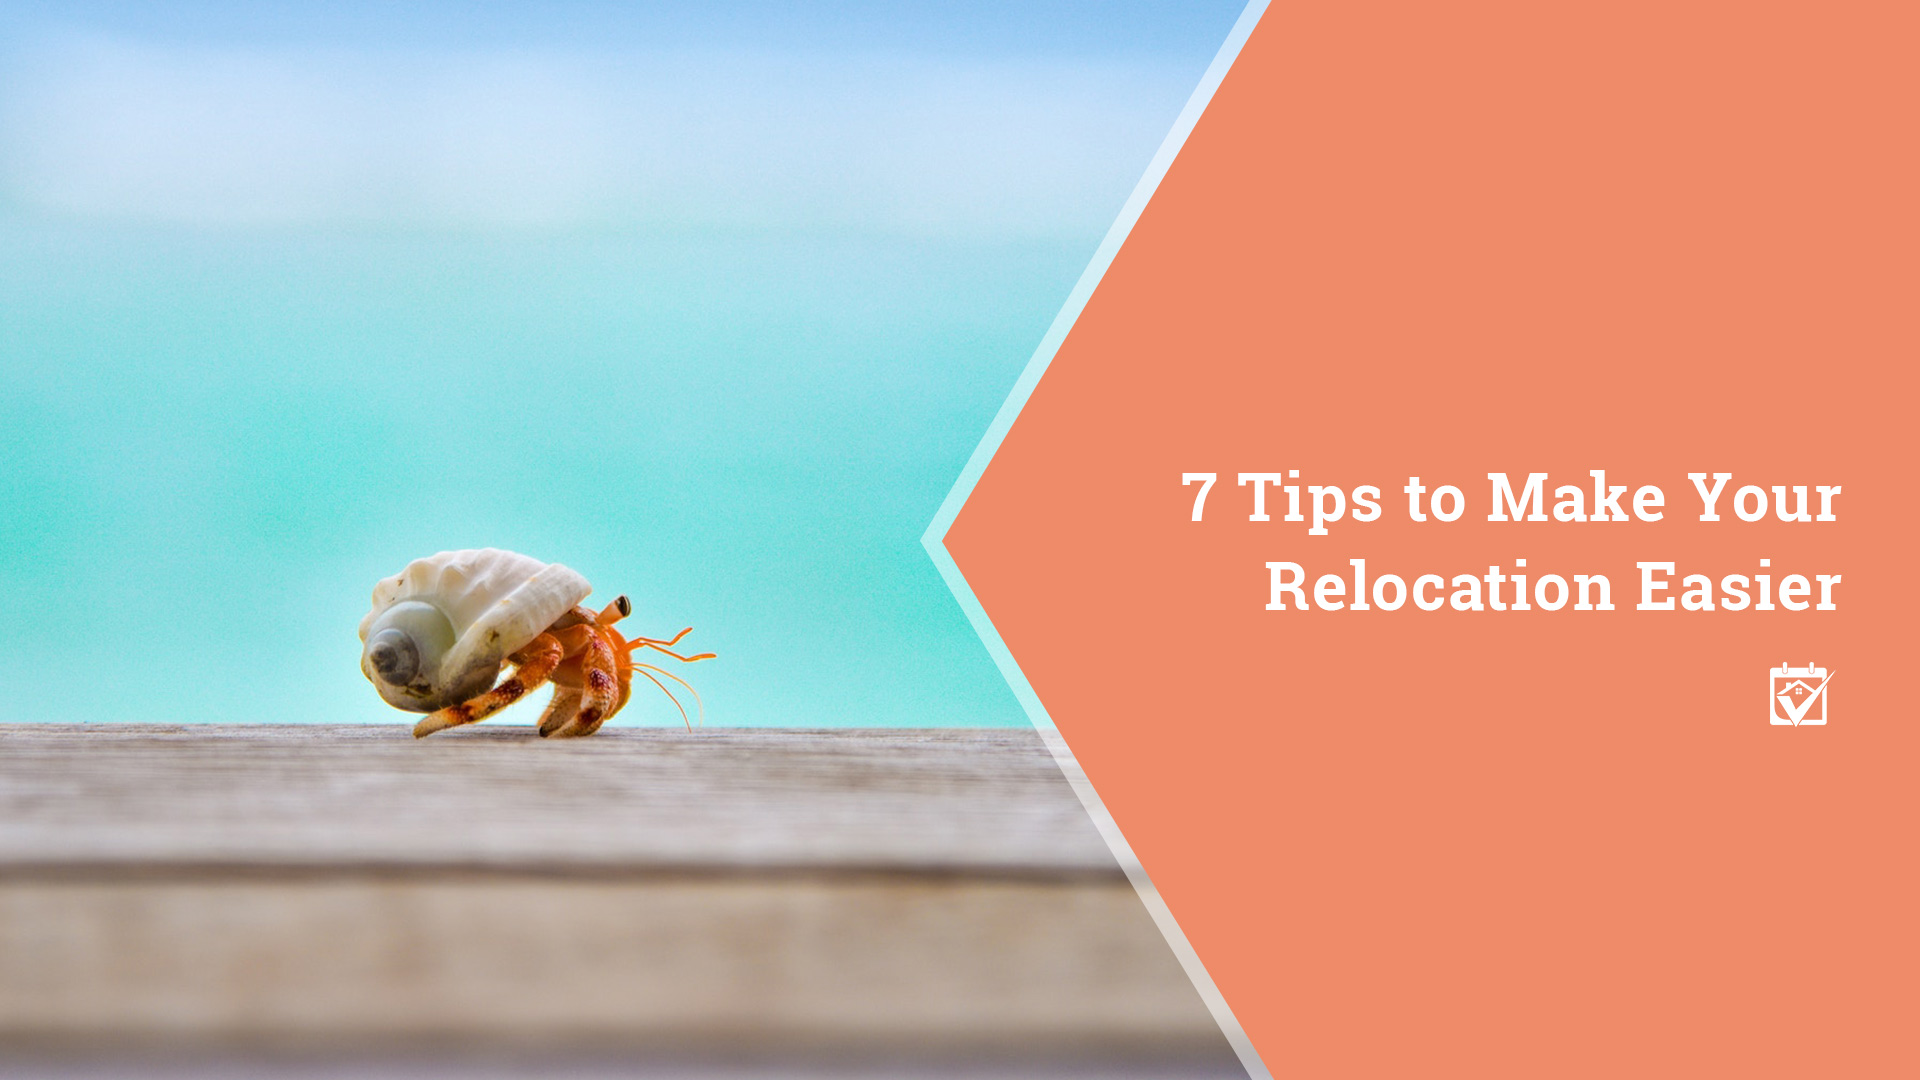 7 Tips to Make Relocation Easier